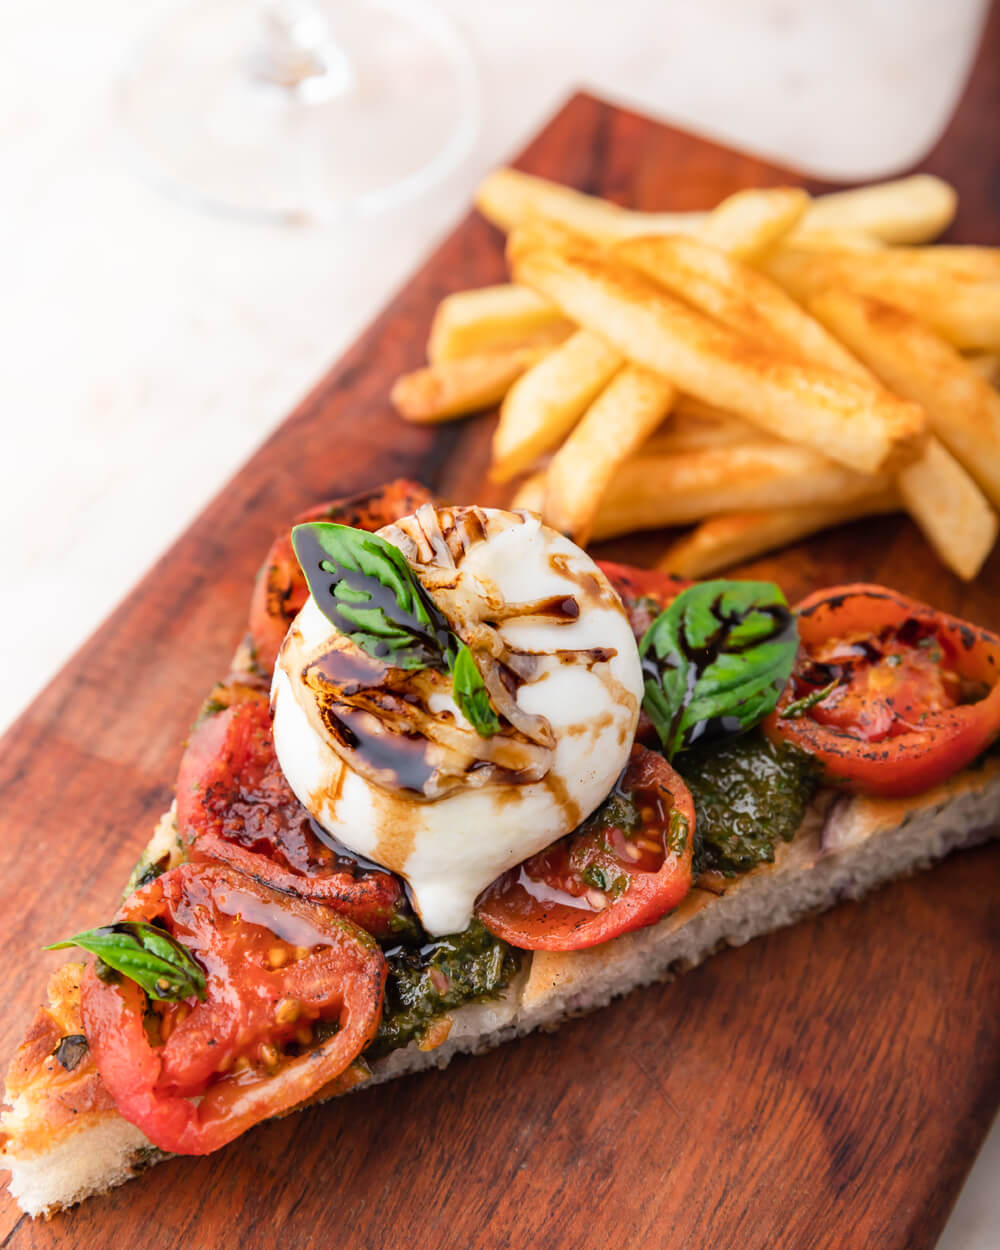 ROASTED-TOMATO-_-SMOKED-BABY-BURATA-CAPRESE-ON-WARM-ONION-FOCCACIA-